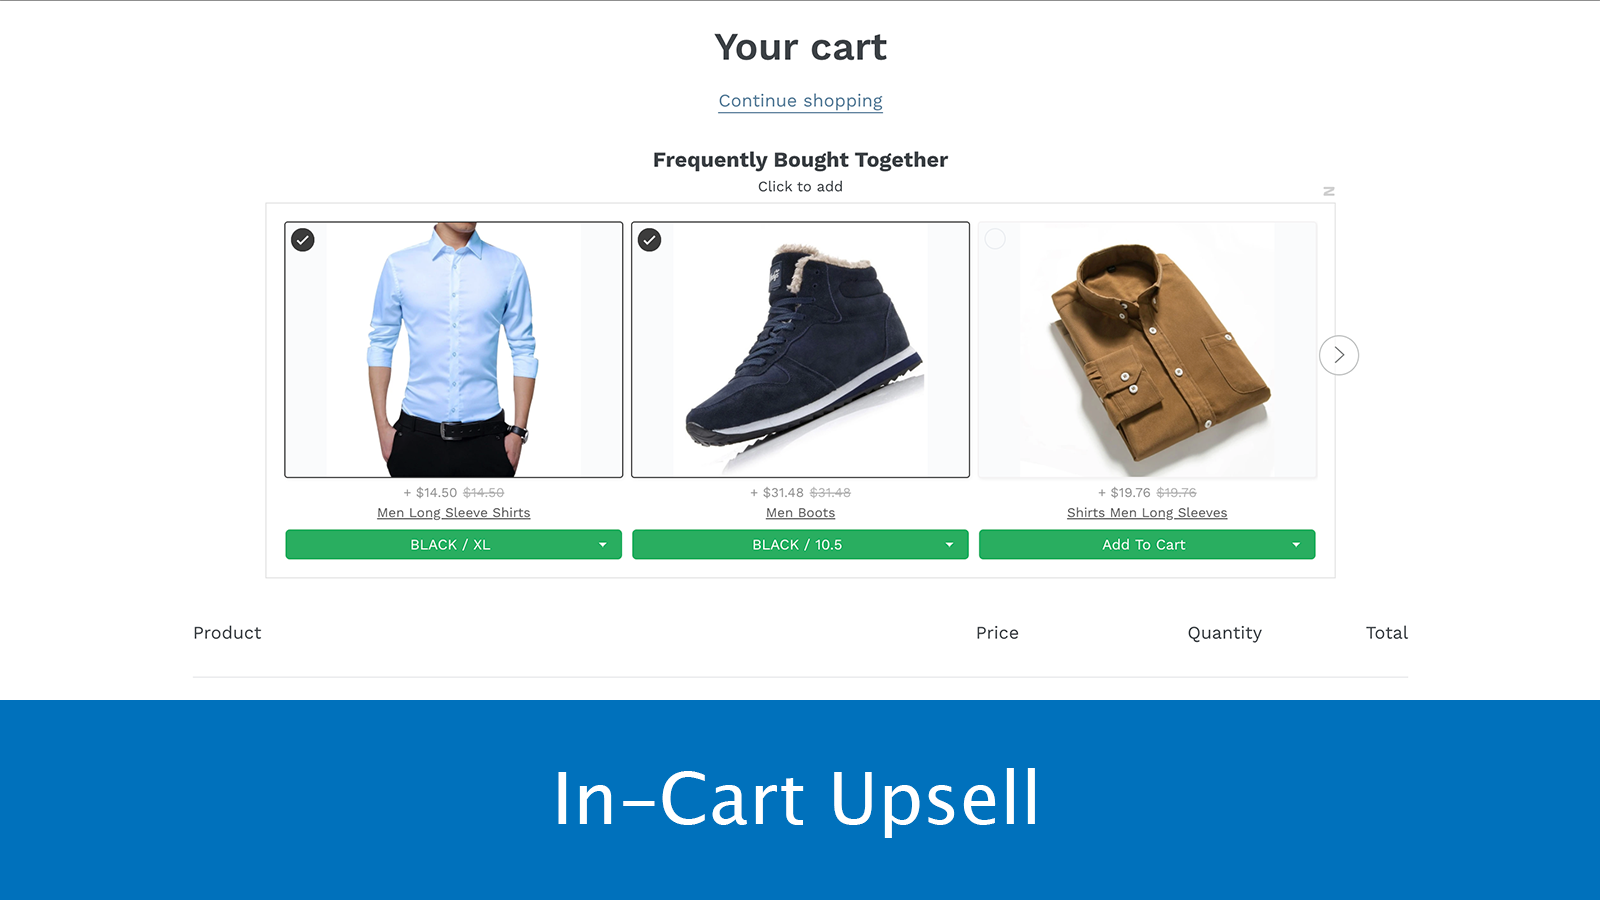 In-Cart Upsell